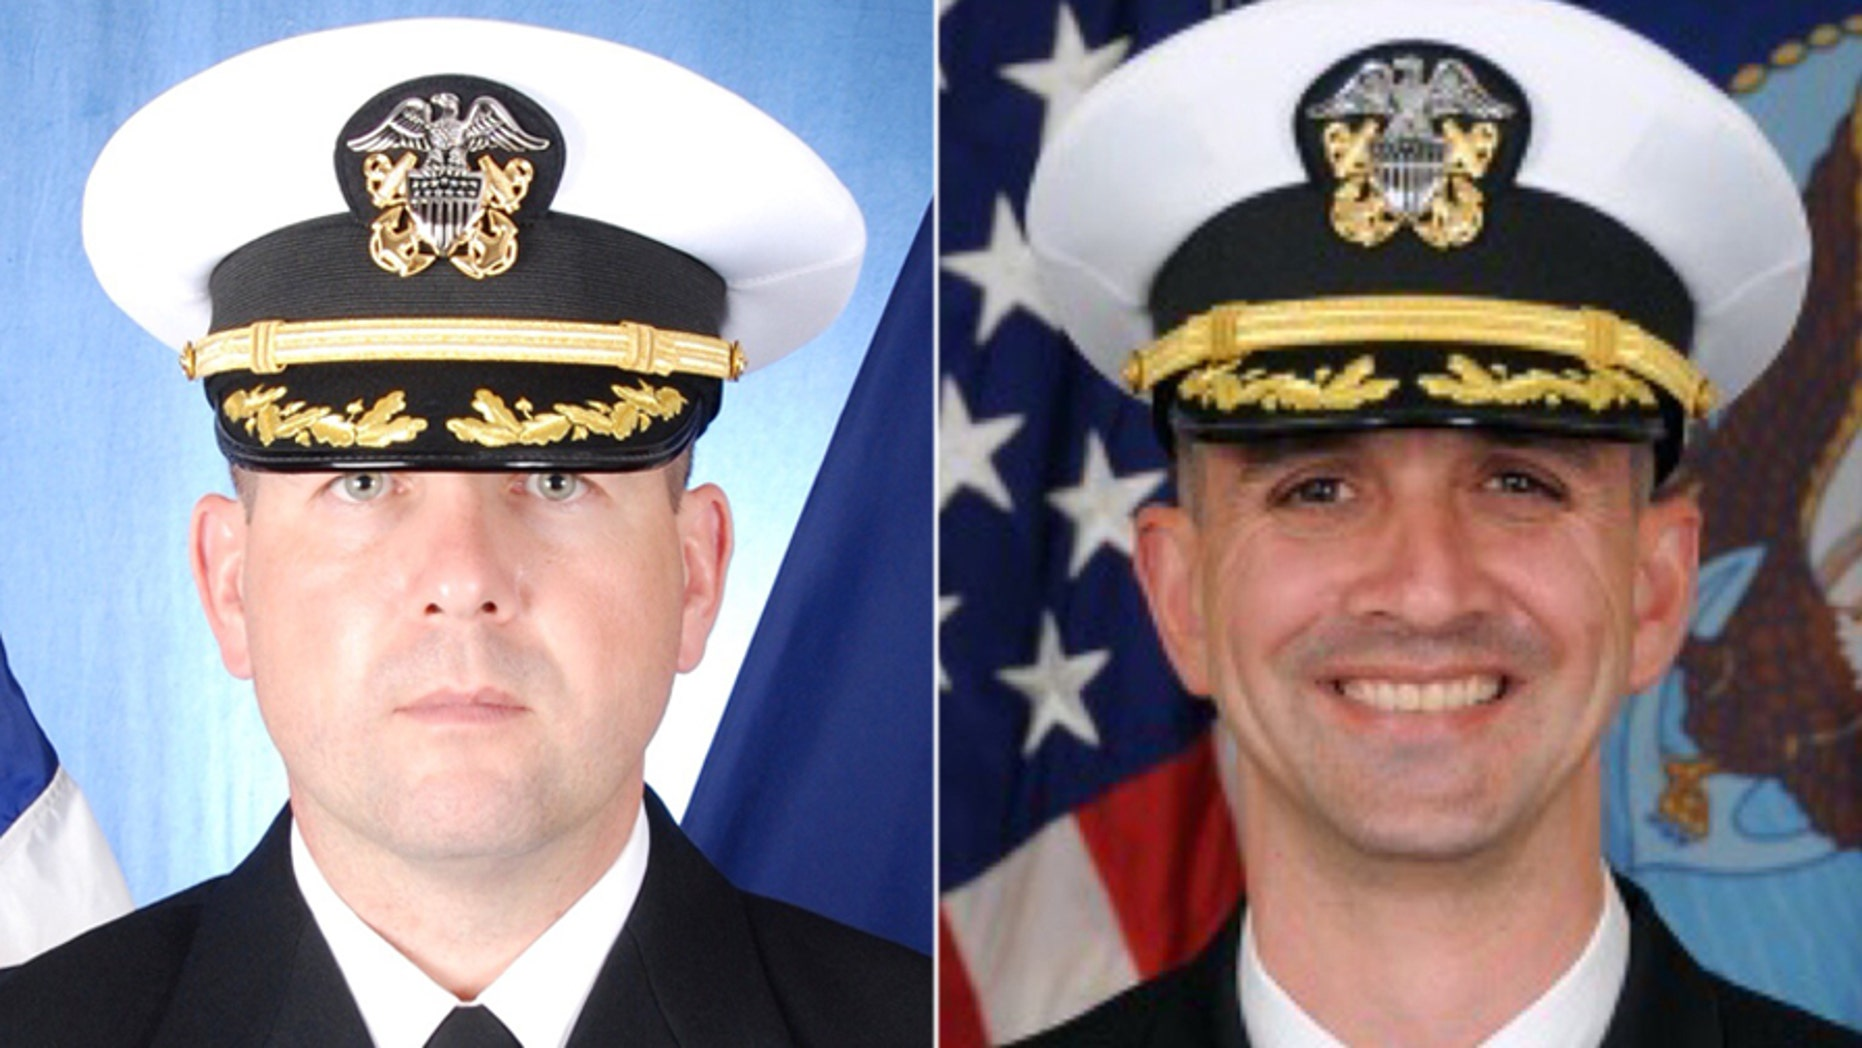 Former USS Fitzgerald commander Cmdr. Bryce Benson (left) and former USS John S. McCain commander Cmdr. Alfredo J. Sanchez were charged.